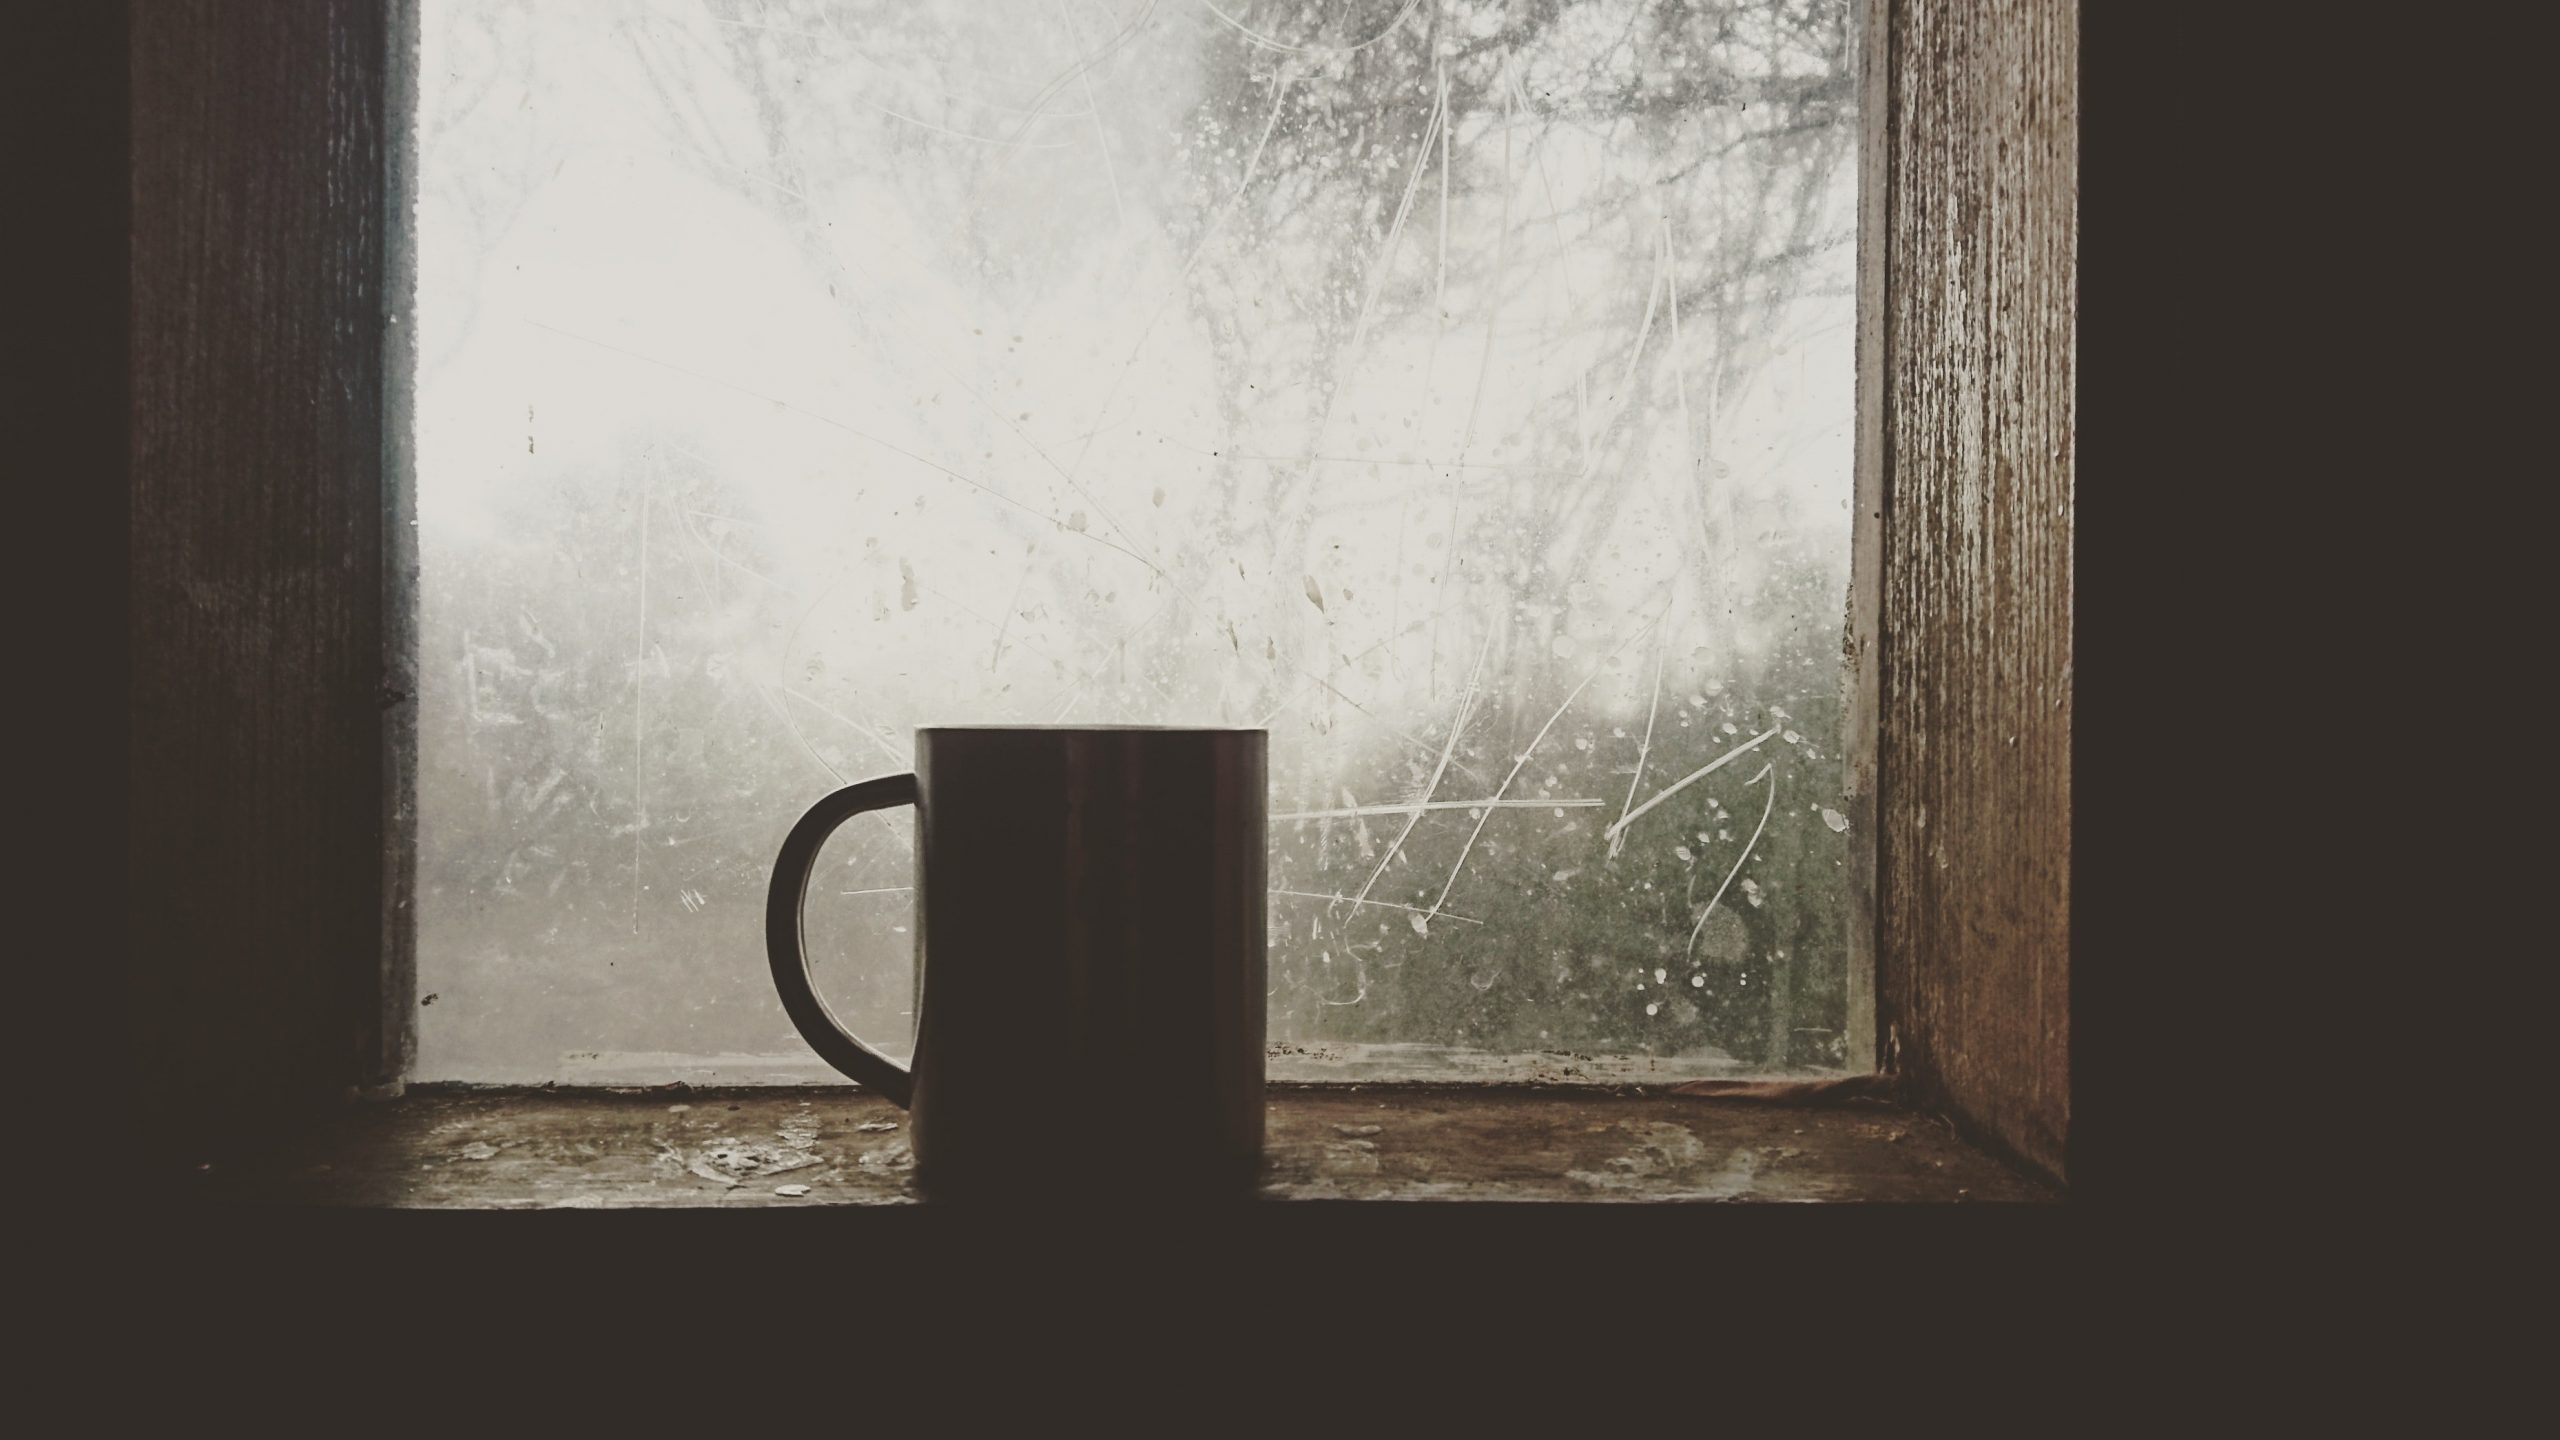 Mug by icy window; staying healthy this season.